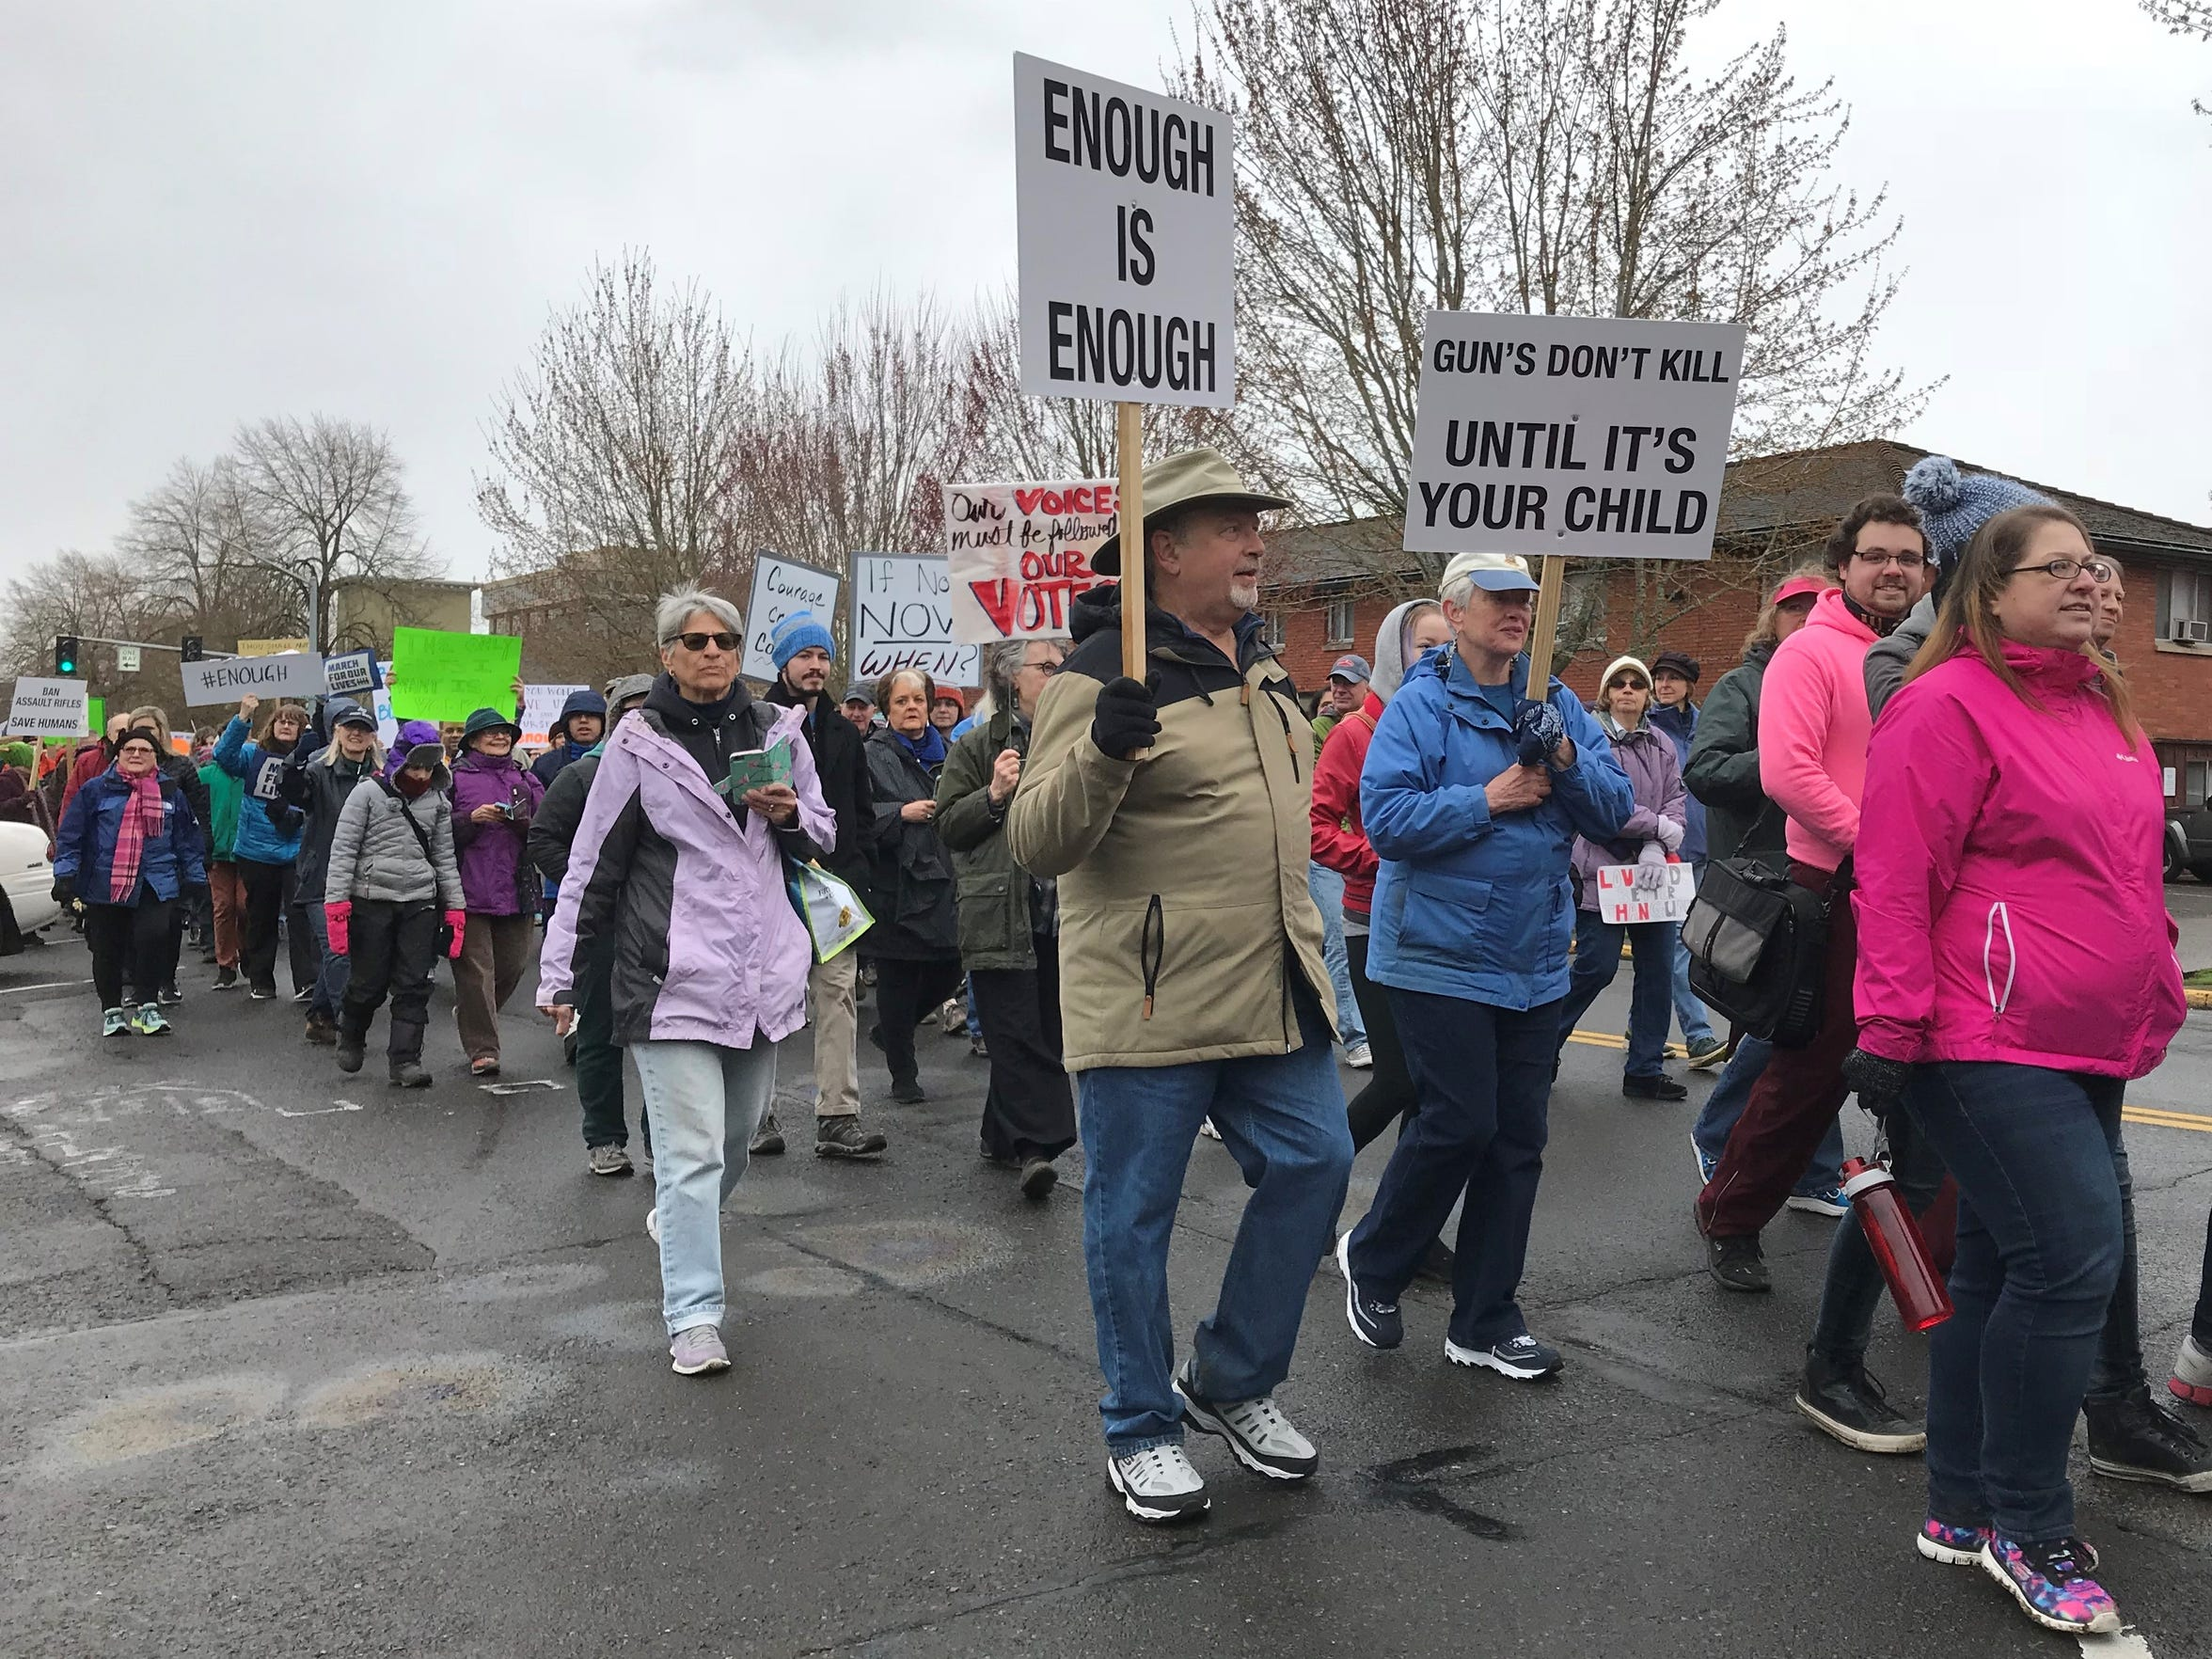 An estimated 2,400 people are marching from the Oregon State Capitol calling for stricter gun laws to protect students, teachers and vulnerable communities on Saturday, March 24, 2018.